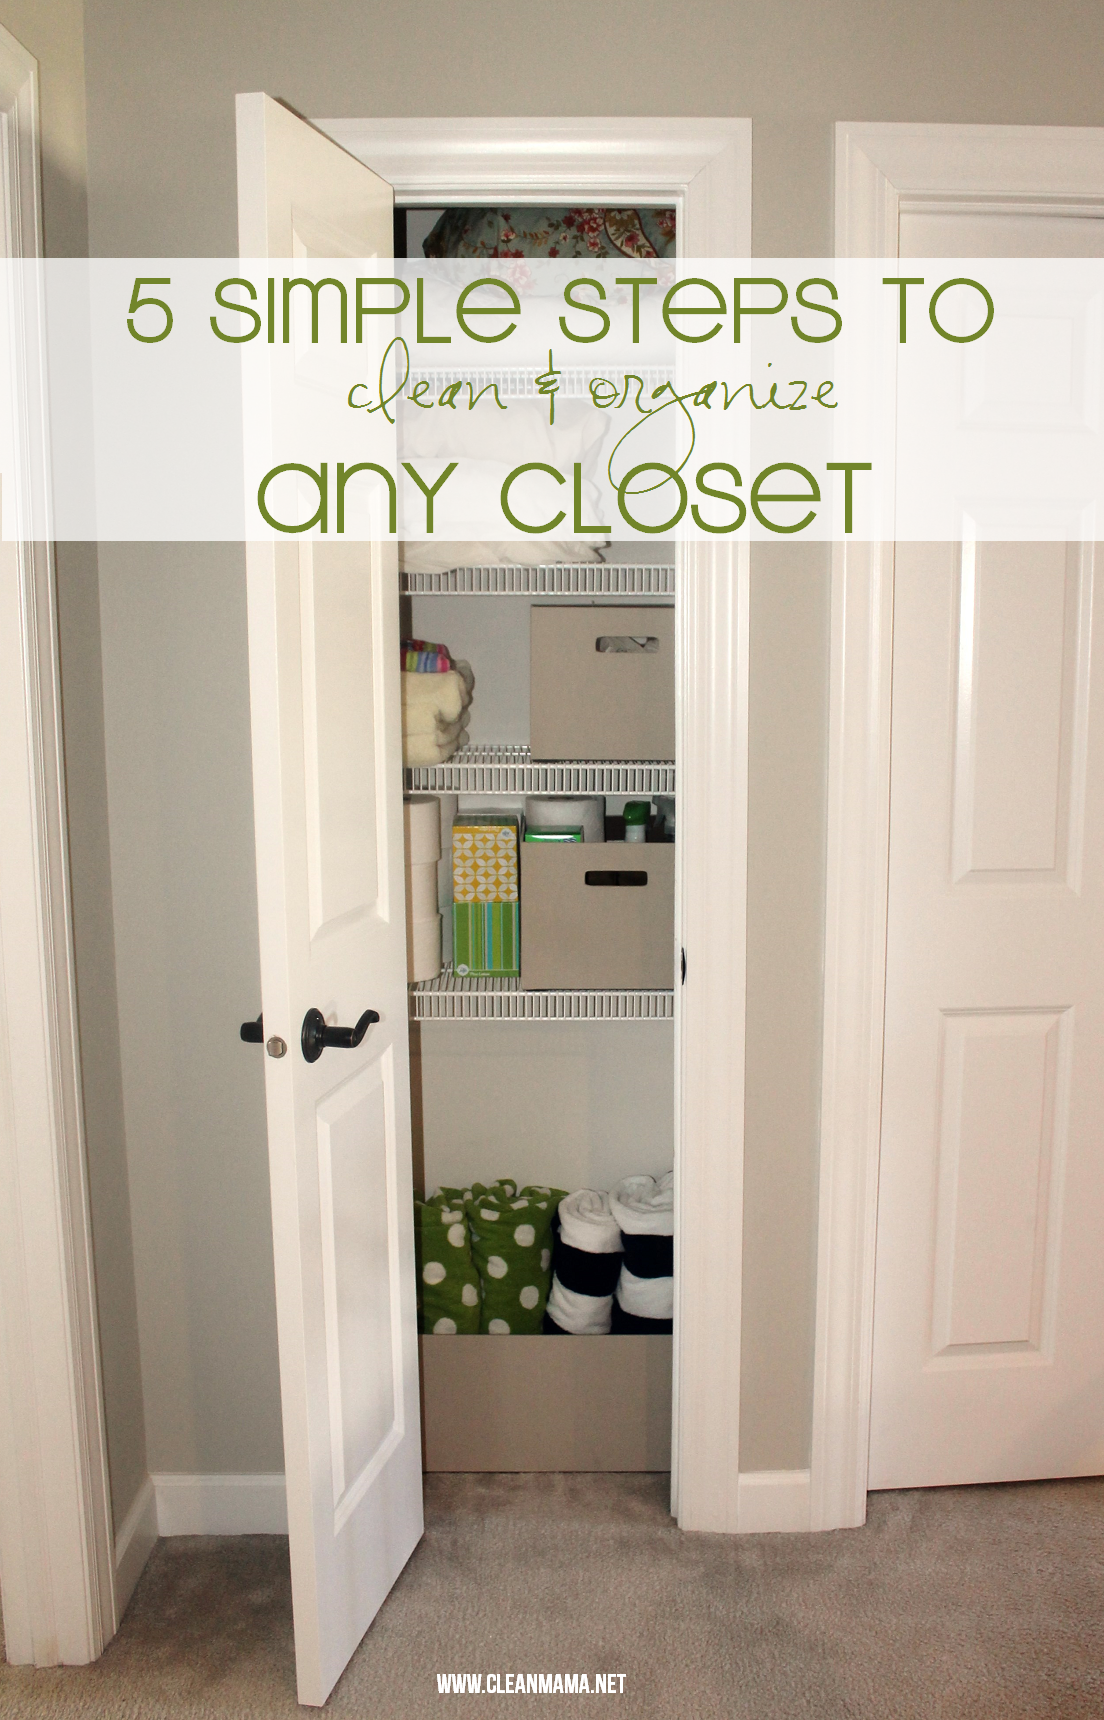 5 Simple Steps to Clean + Organize Any Closet via Clean Mama